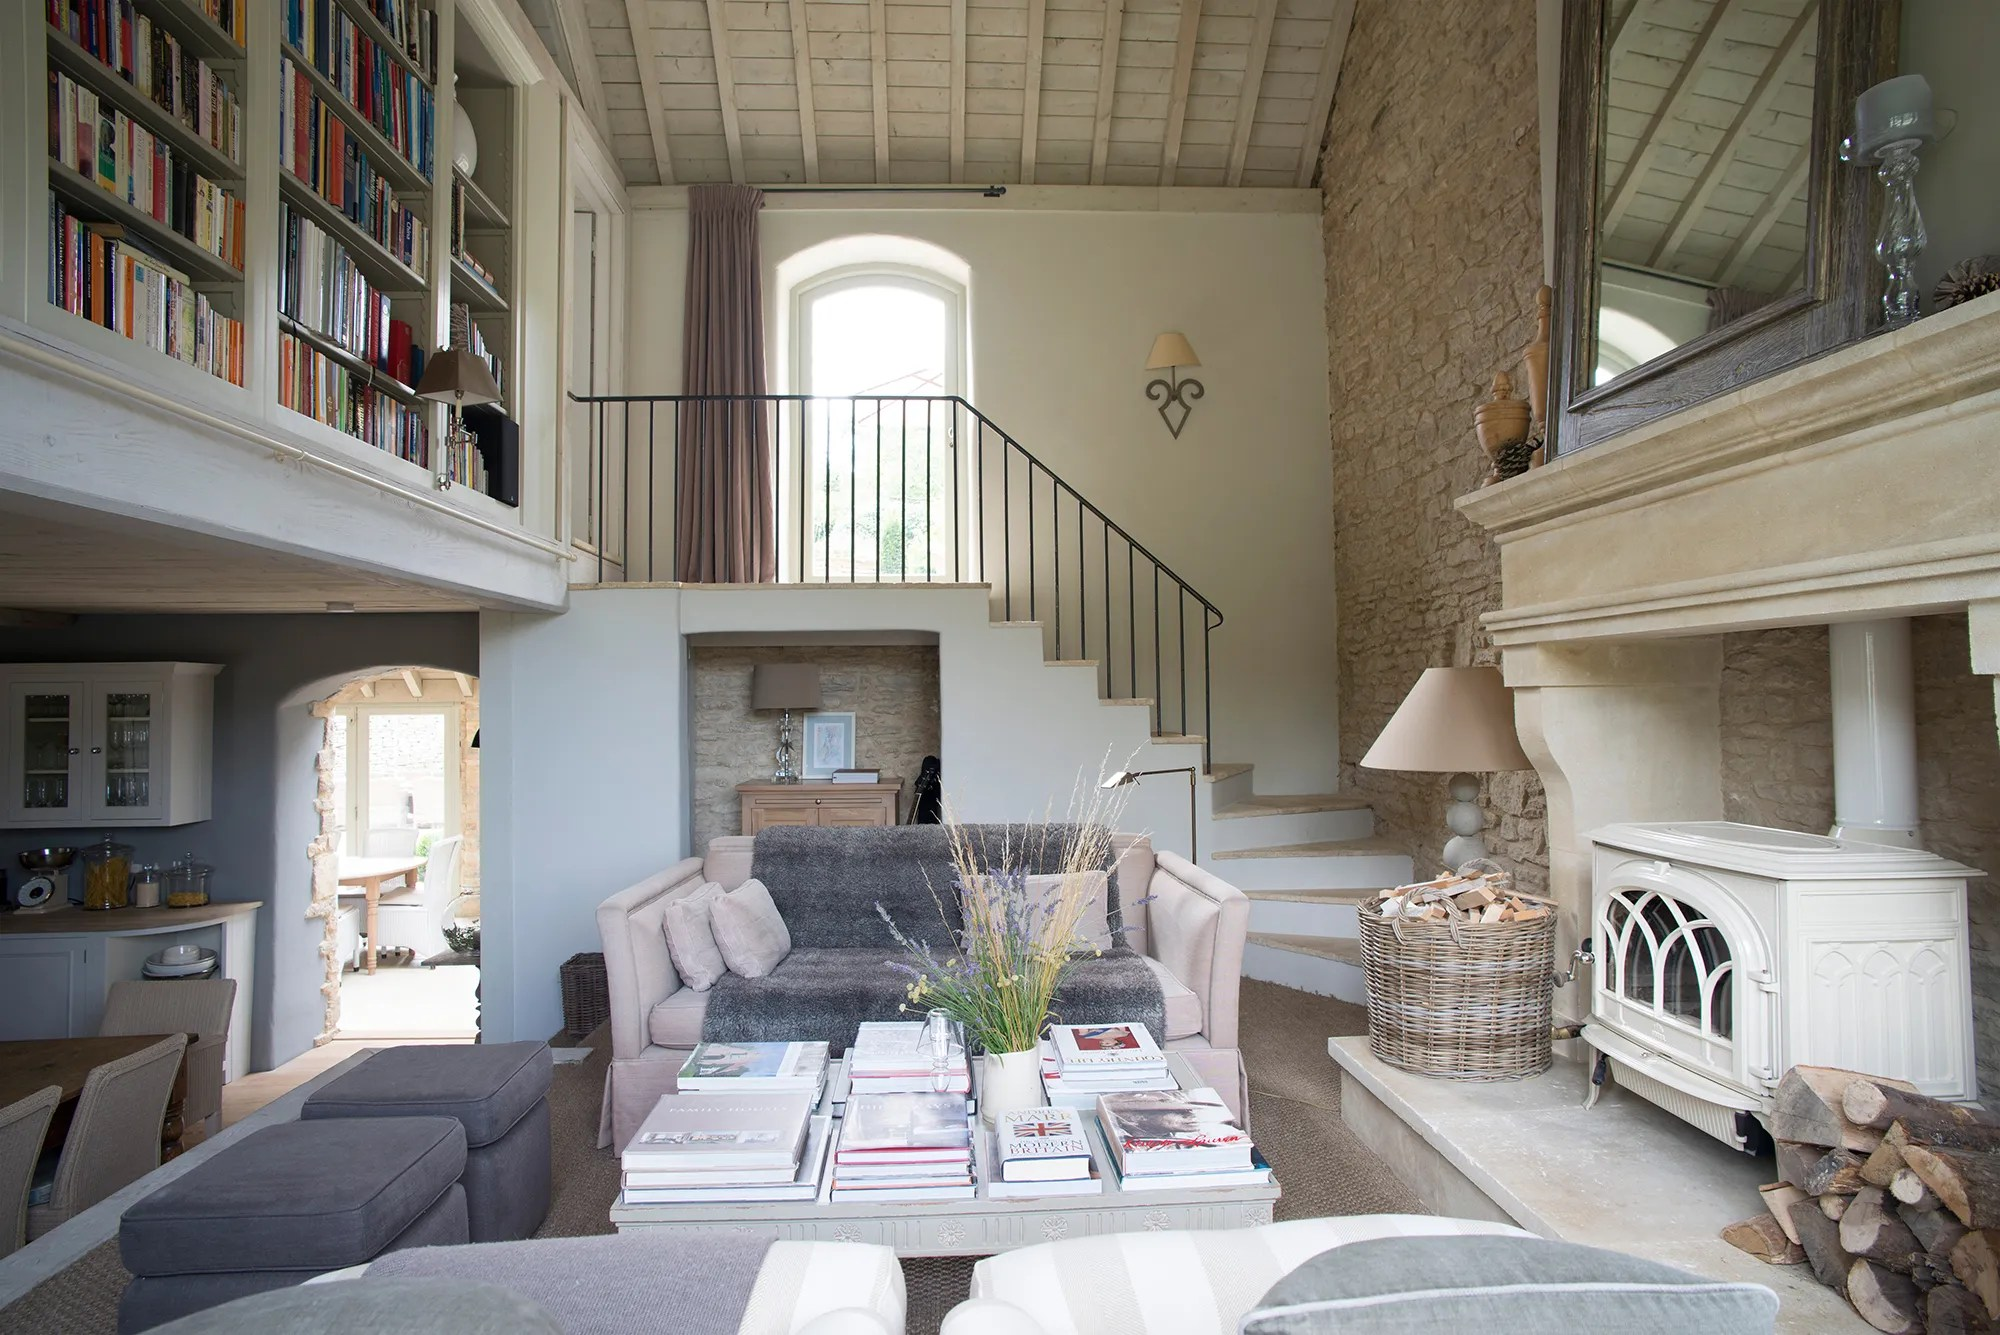 Bhdaiacc50 Bedroom Home Design And Interior Awesome Country Cottage Today 2020 10 02 Download Here